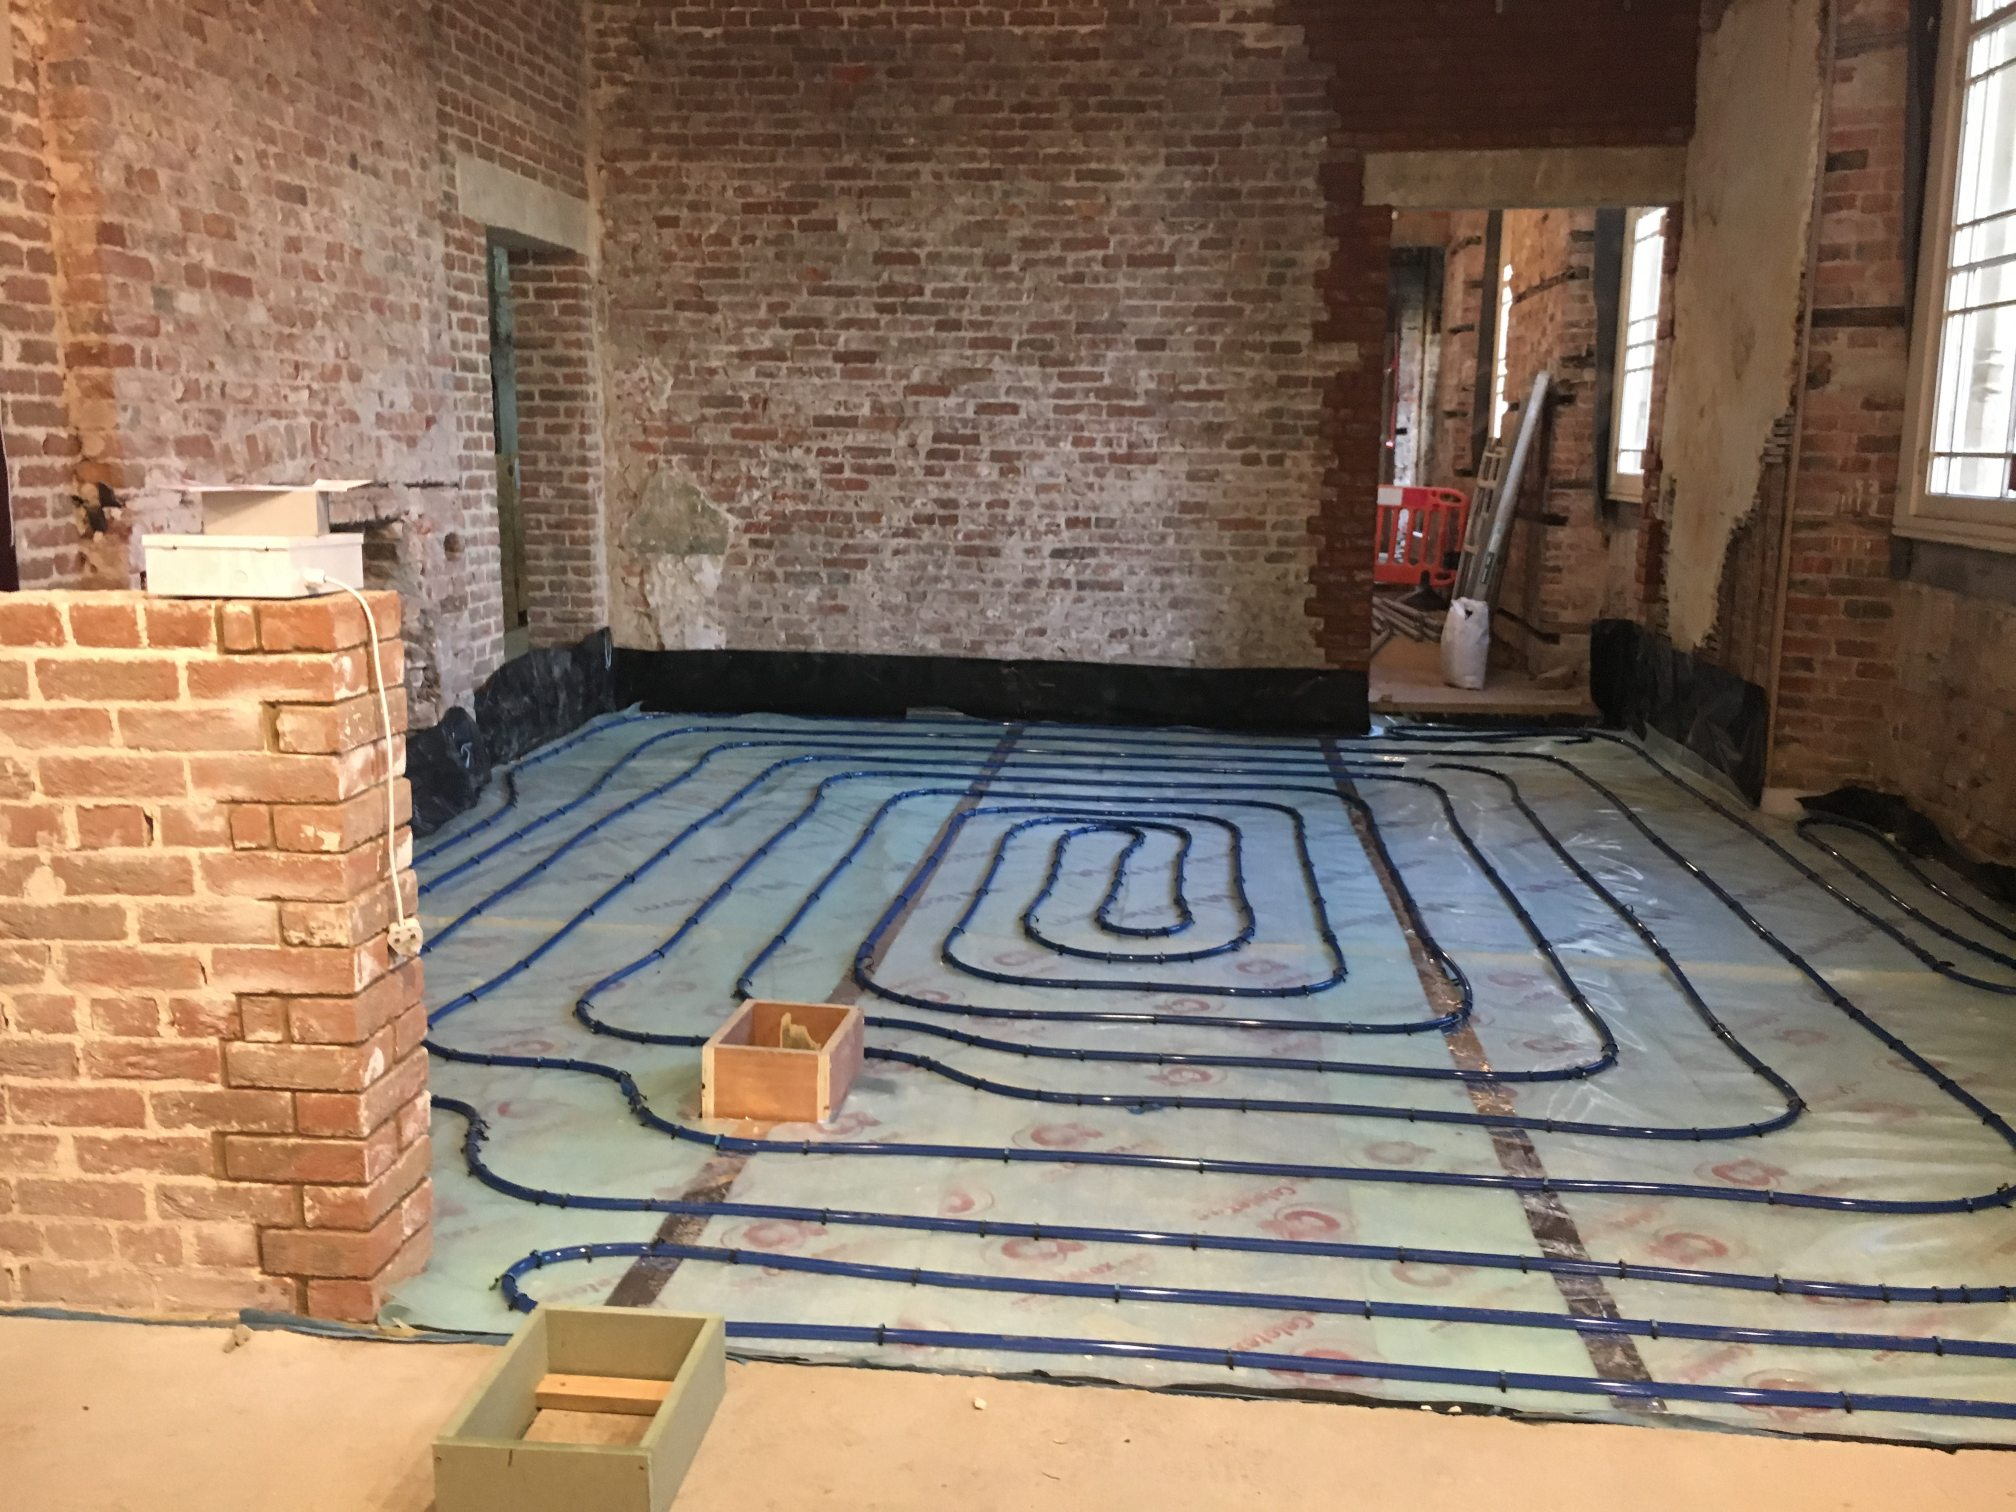 Room with exposed brick walls and cables laid on floor for underfloor heating.